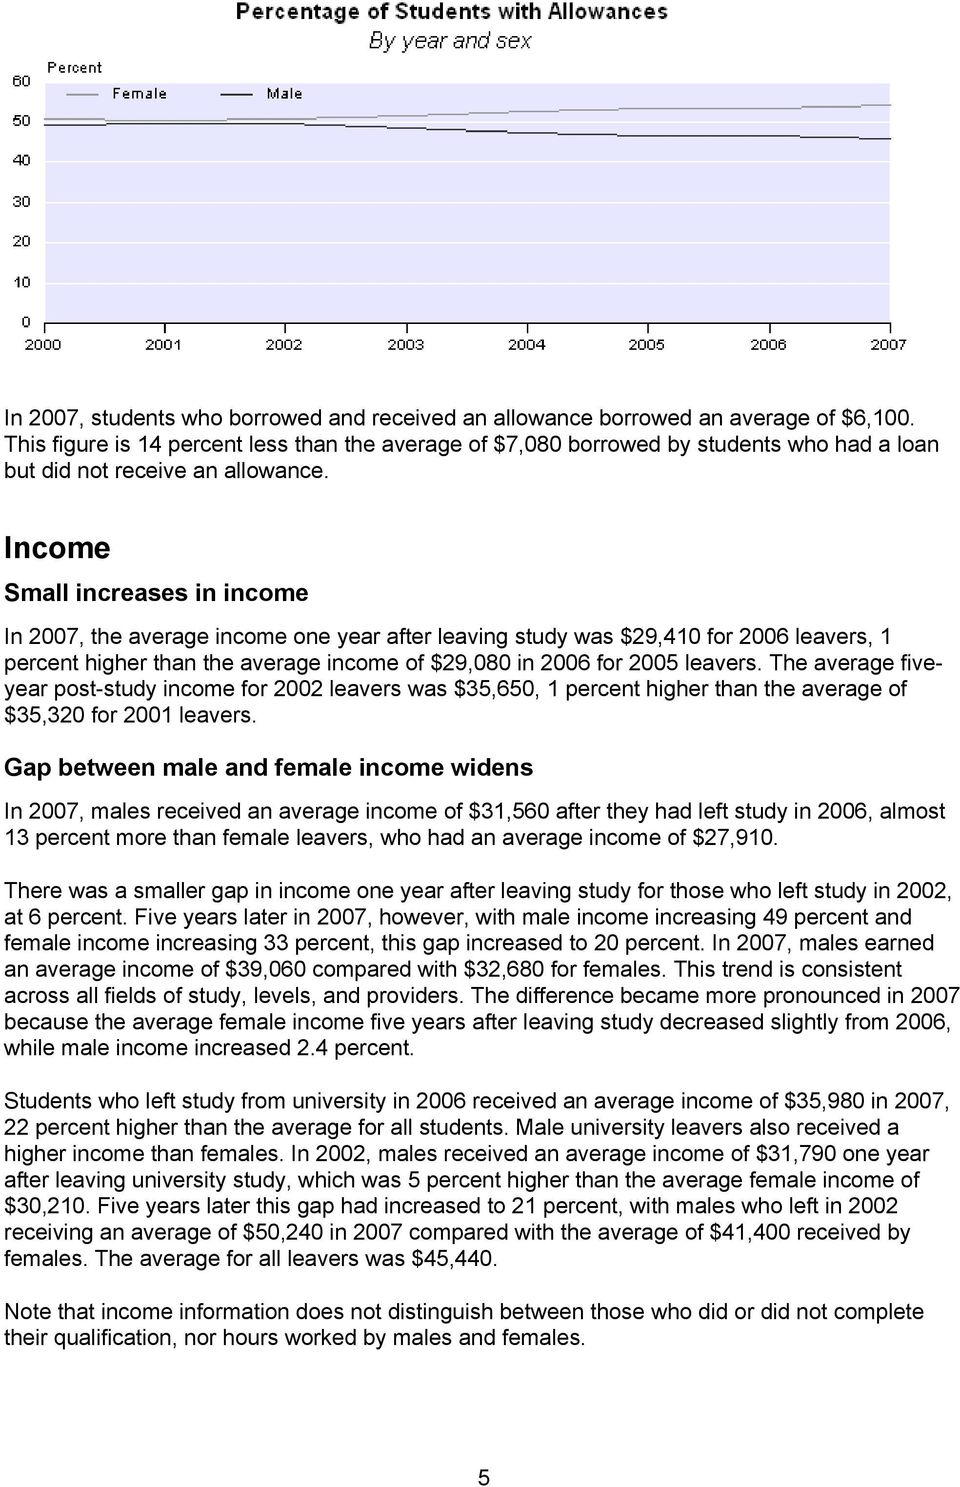 Income Small increases in income In 2007, the average income one year after leaving study was $29,410 for 2006 leavers, 1 percent higher than the average income of $29,080 in 2006 for 2005 leavers.